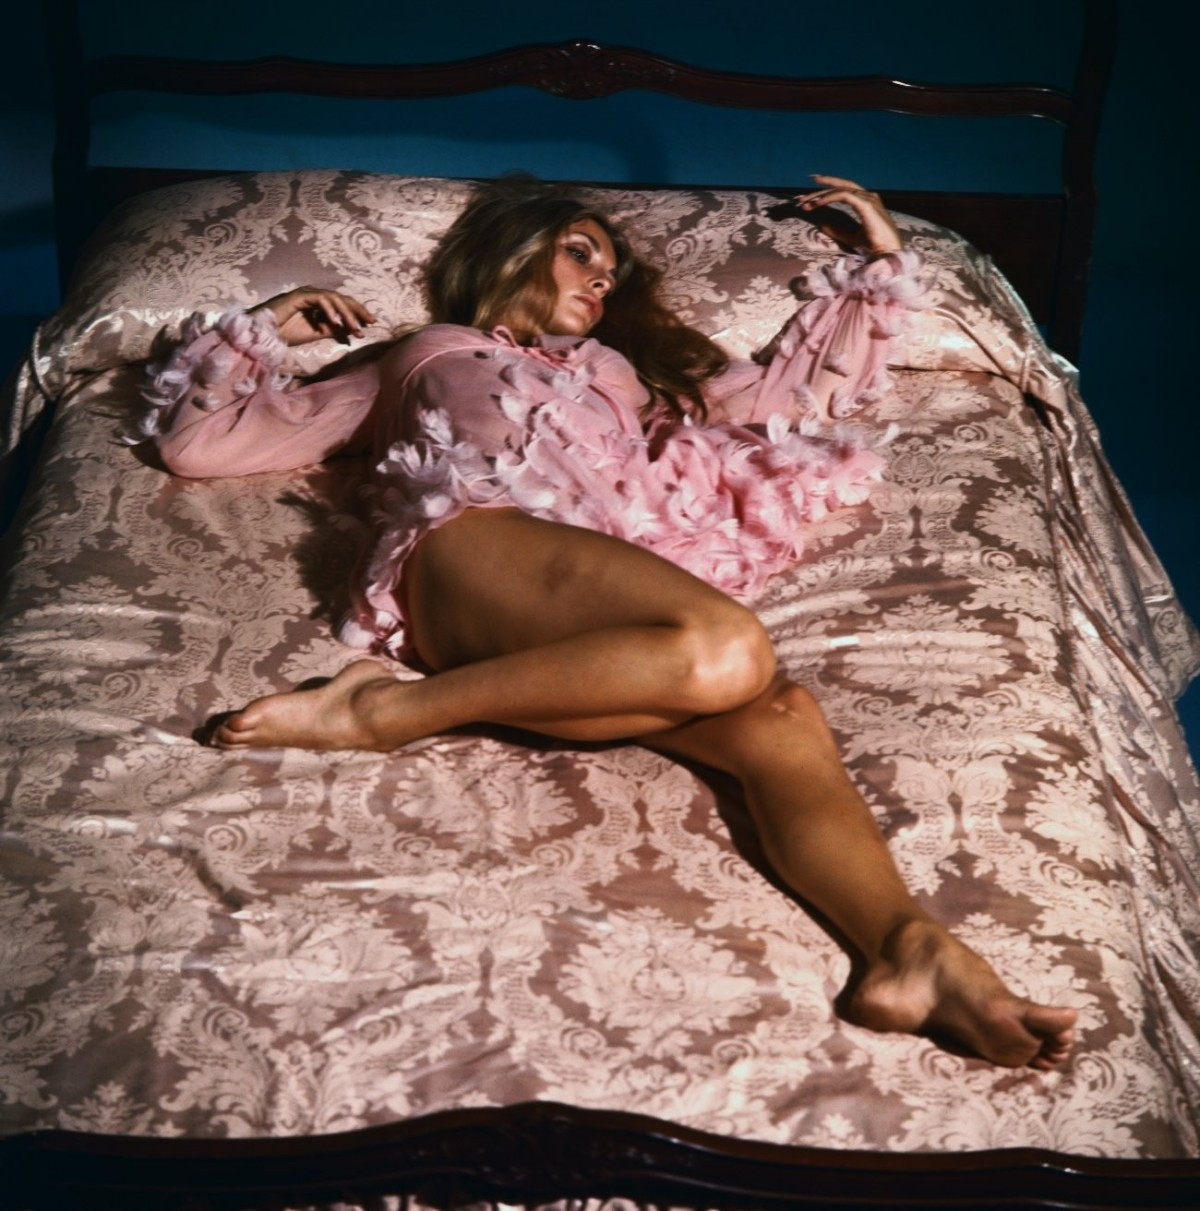 https://24femmespersecond.files.wordpress.com/2013/11/sharon-tate-195965025.jpg?w=1200